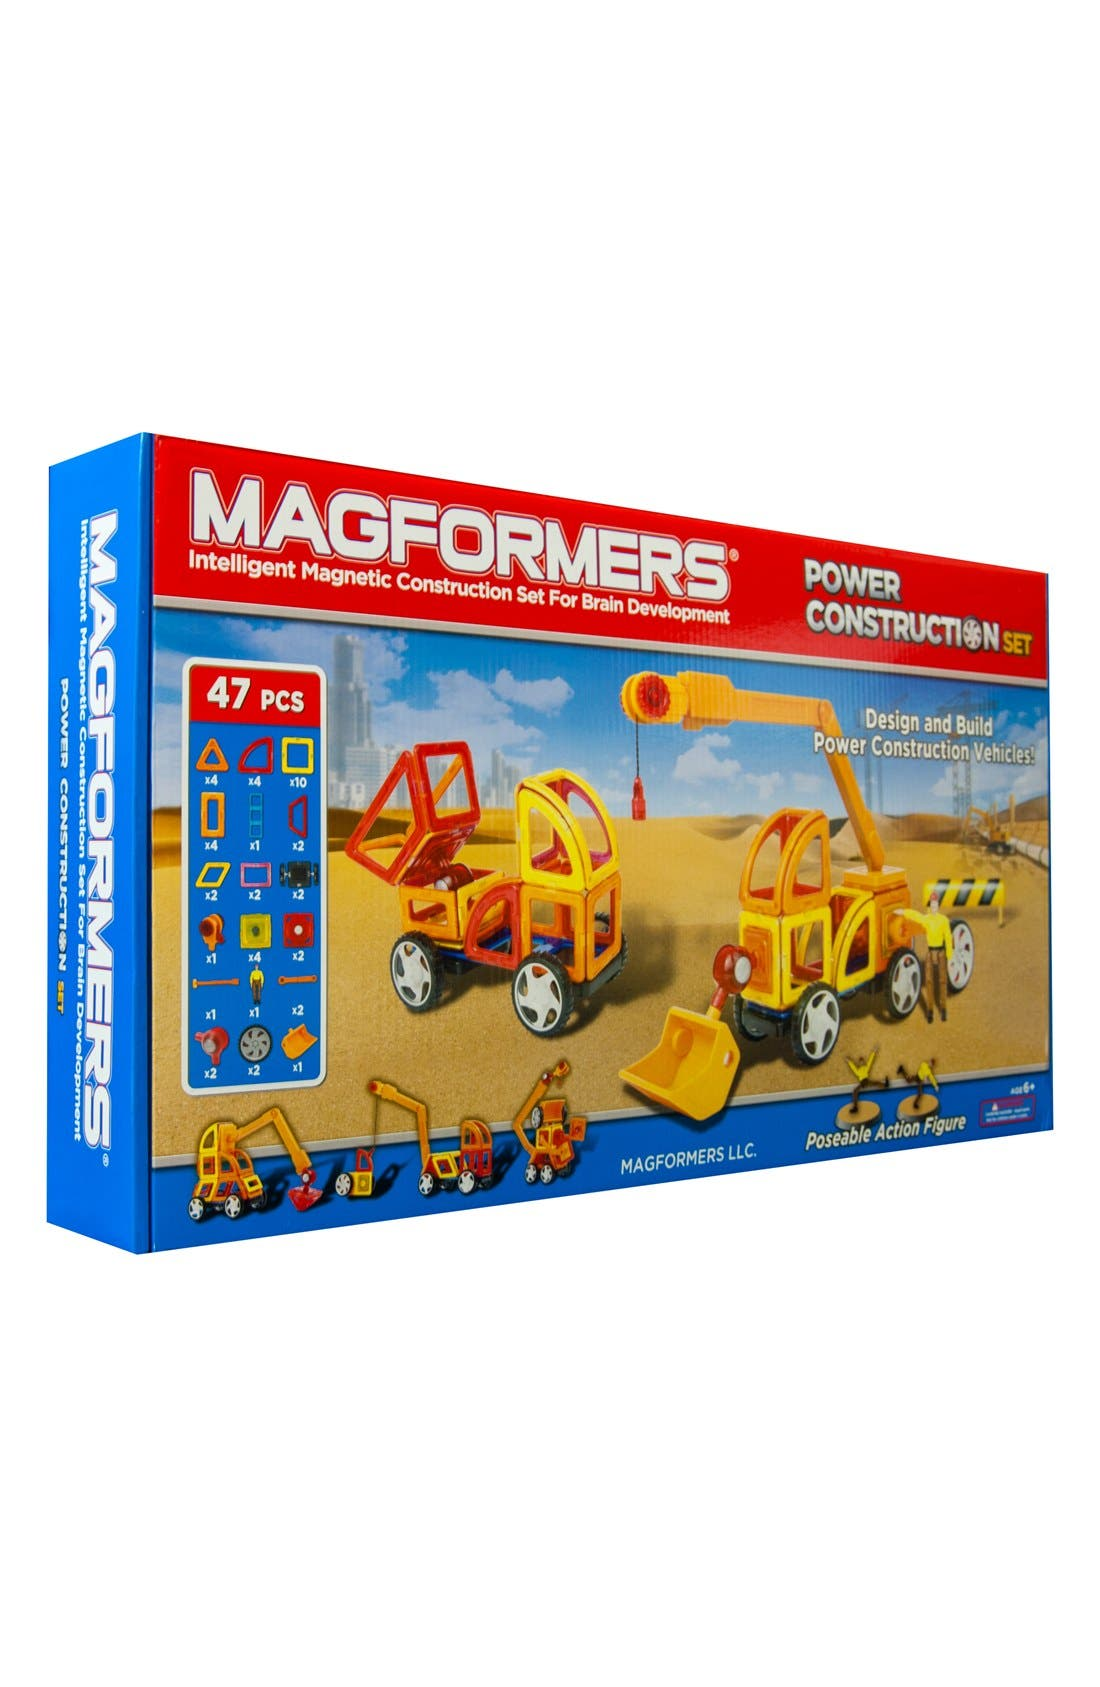 Alternate Image 1 Selected - Magformers 'Power' Construction Set